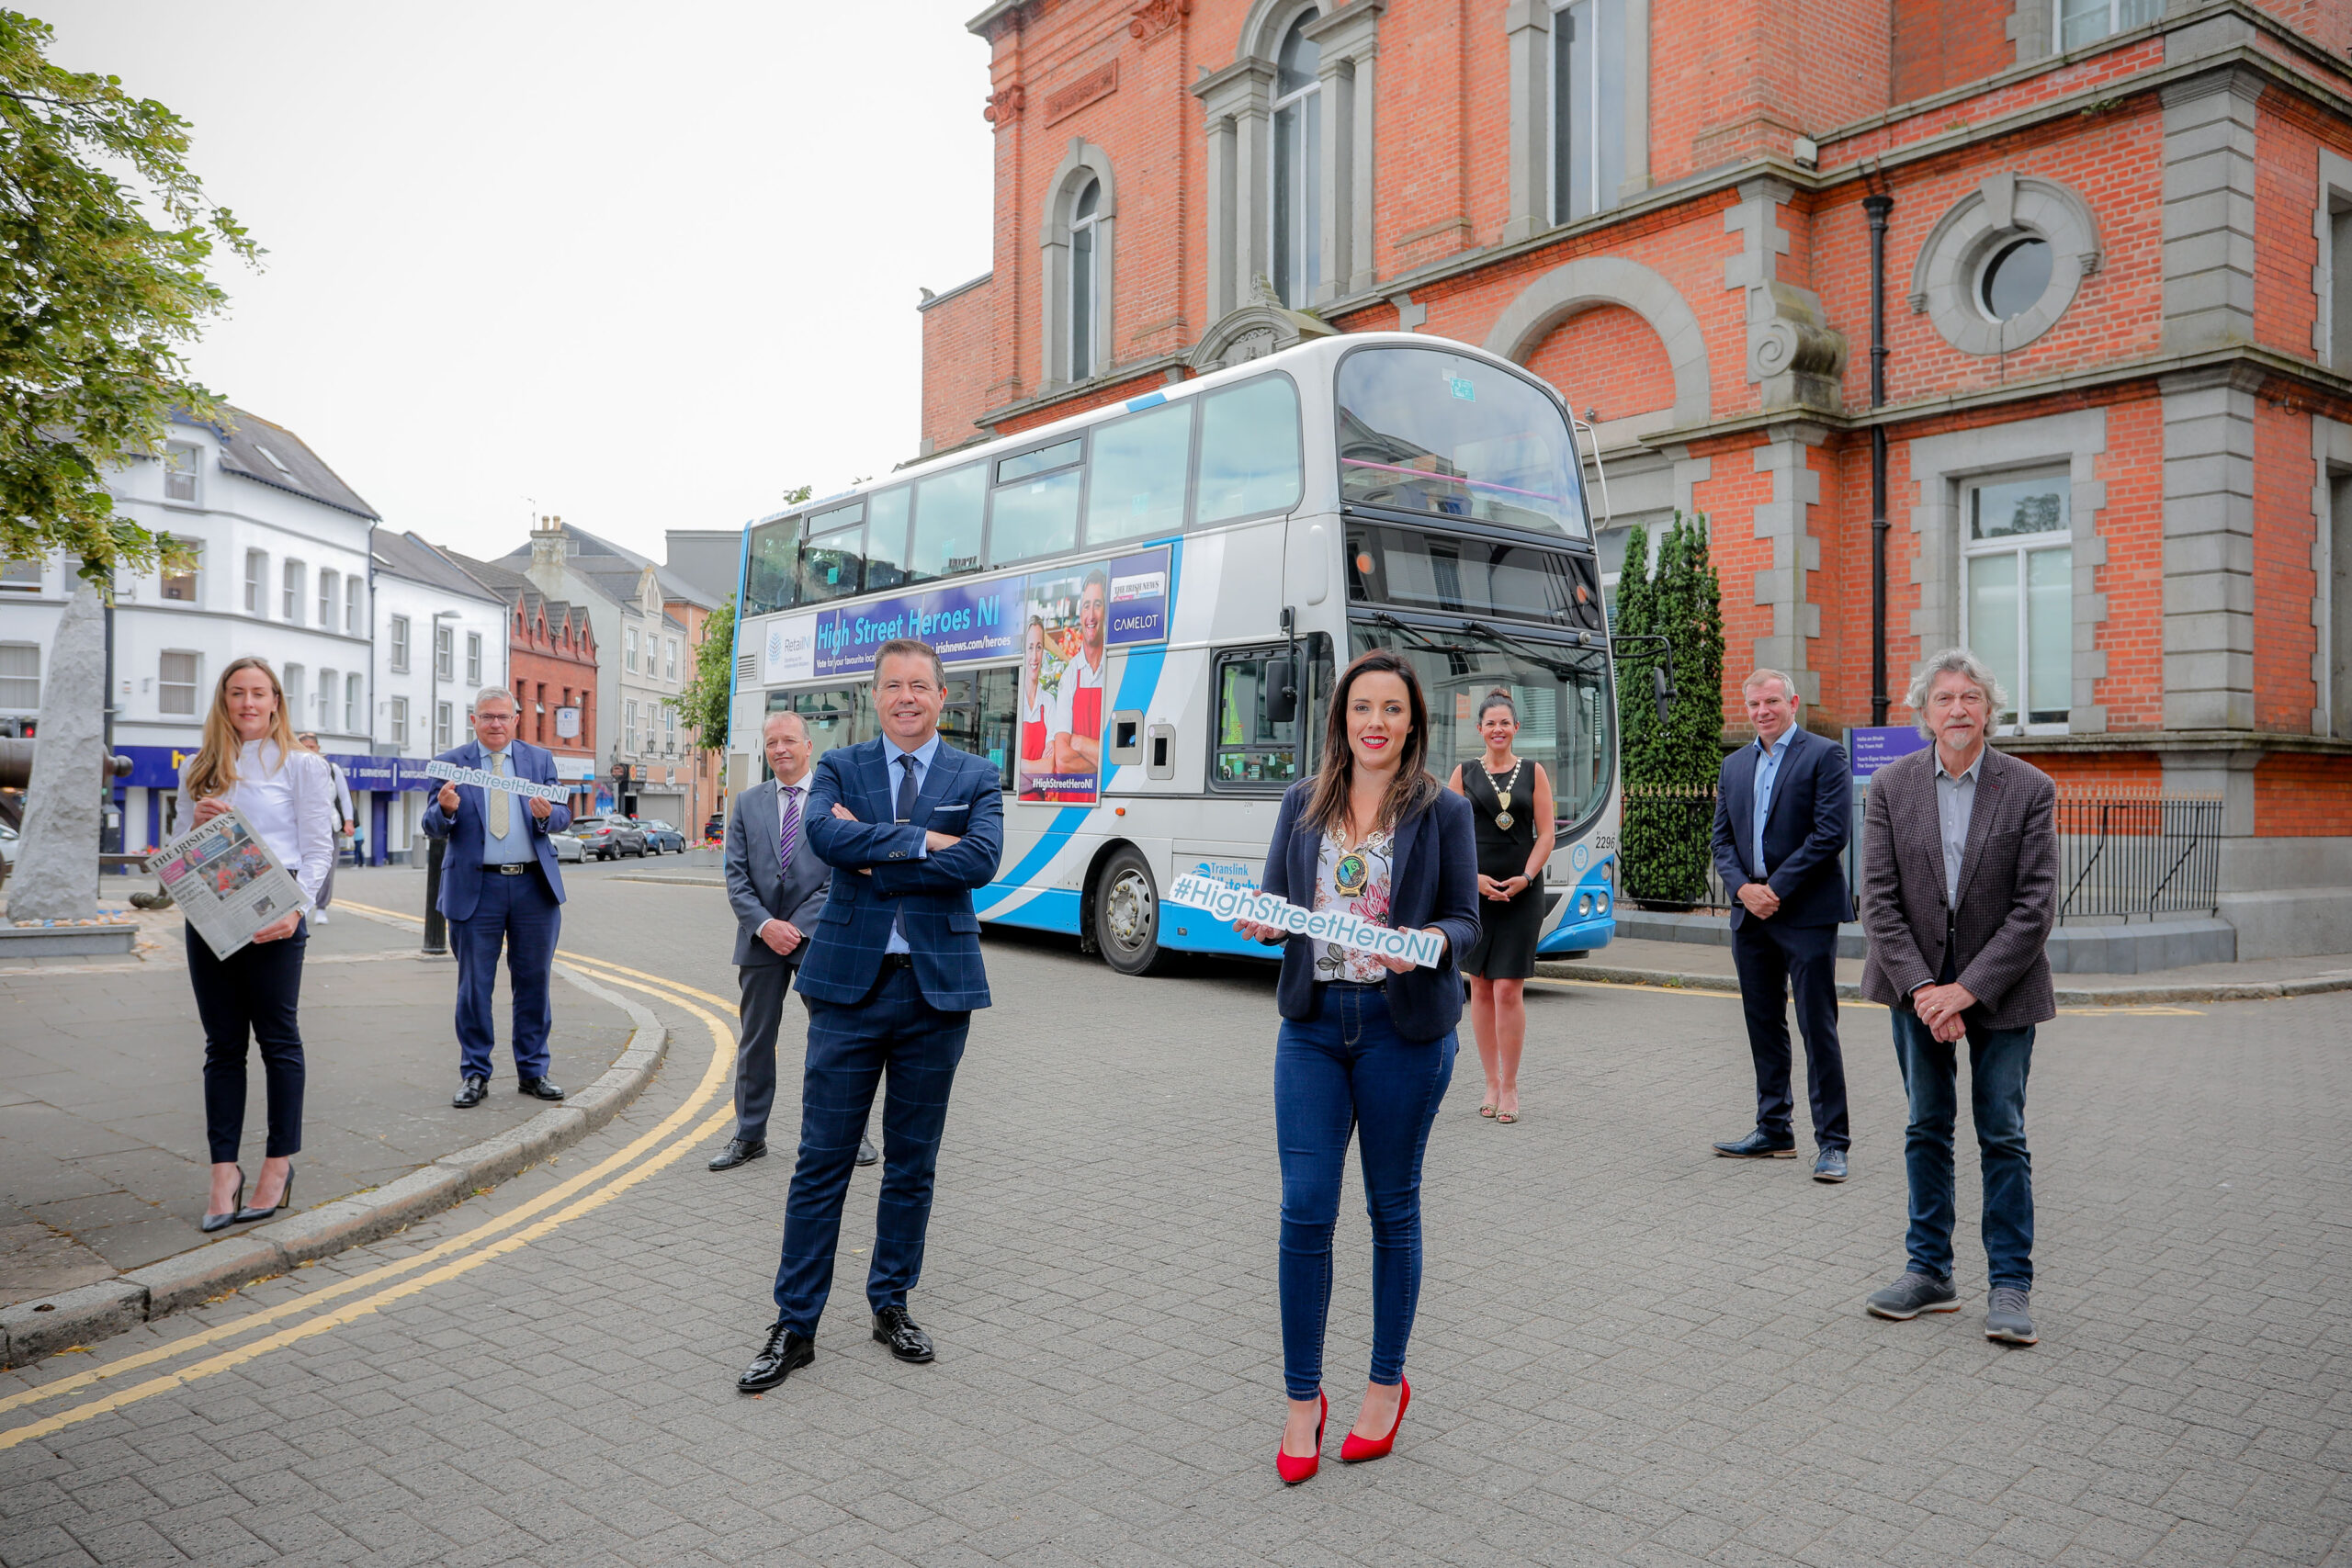 Voting now open to nominate your Newry 'High Street Hero' Newry Times - newry news and business news co down